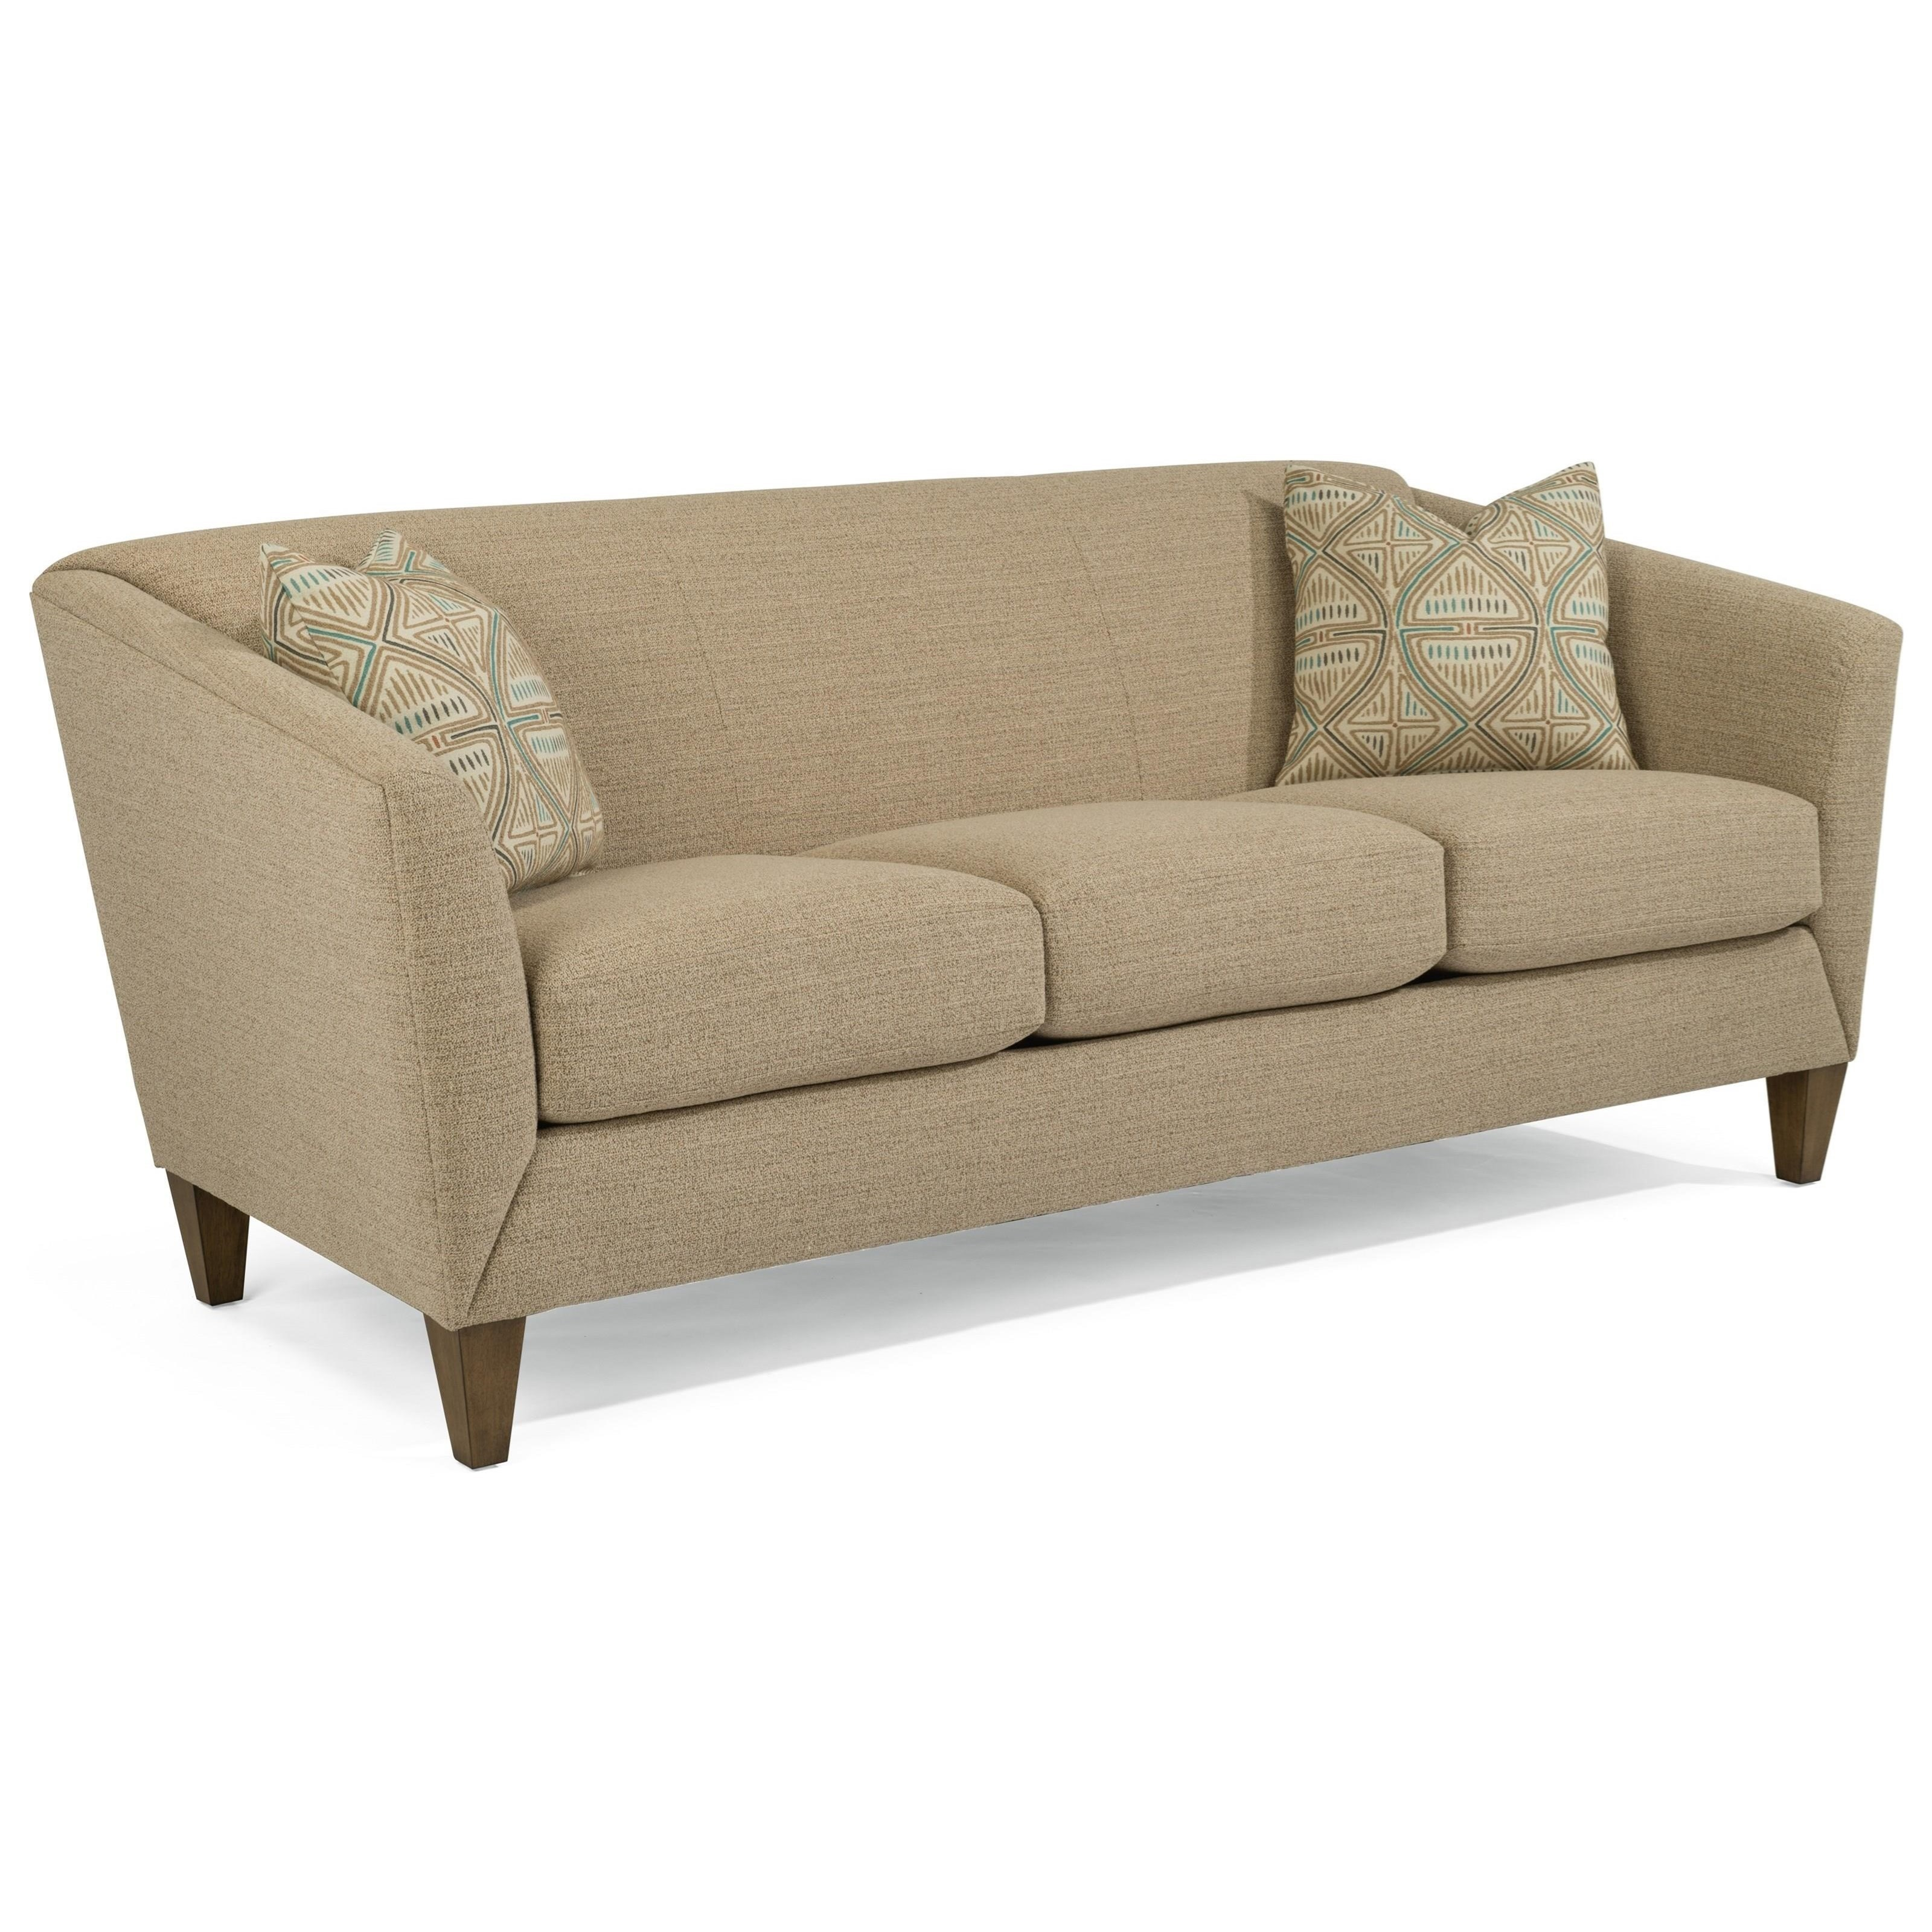 Urban Sofa Nederland Flexsteel Emery Transitional Sofa With Flare Tapered Arms Howell